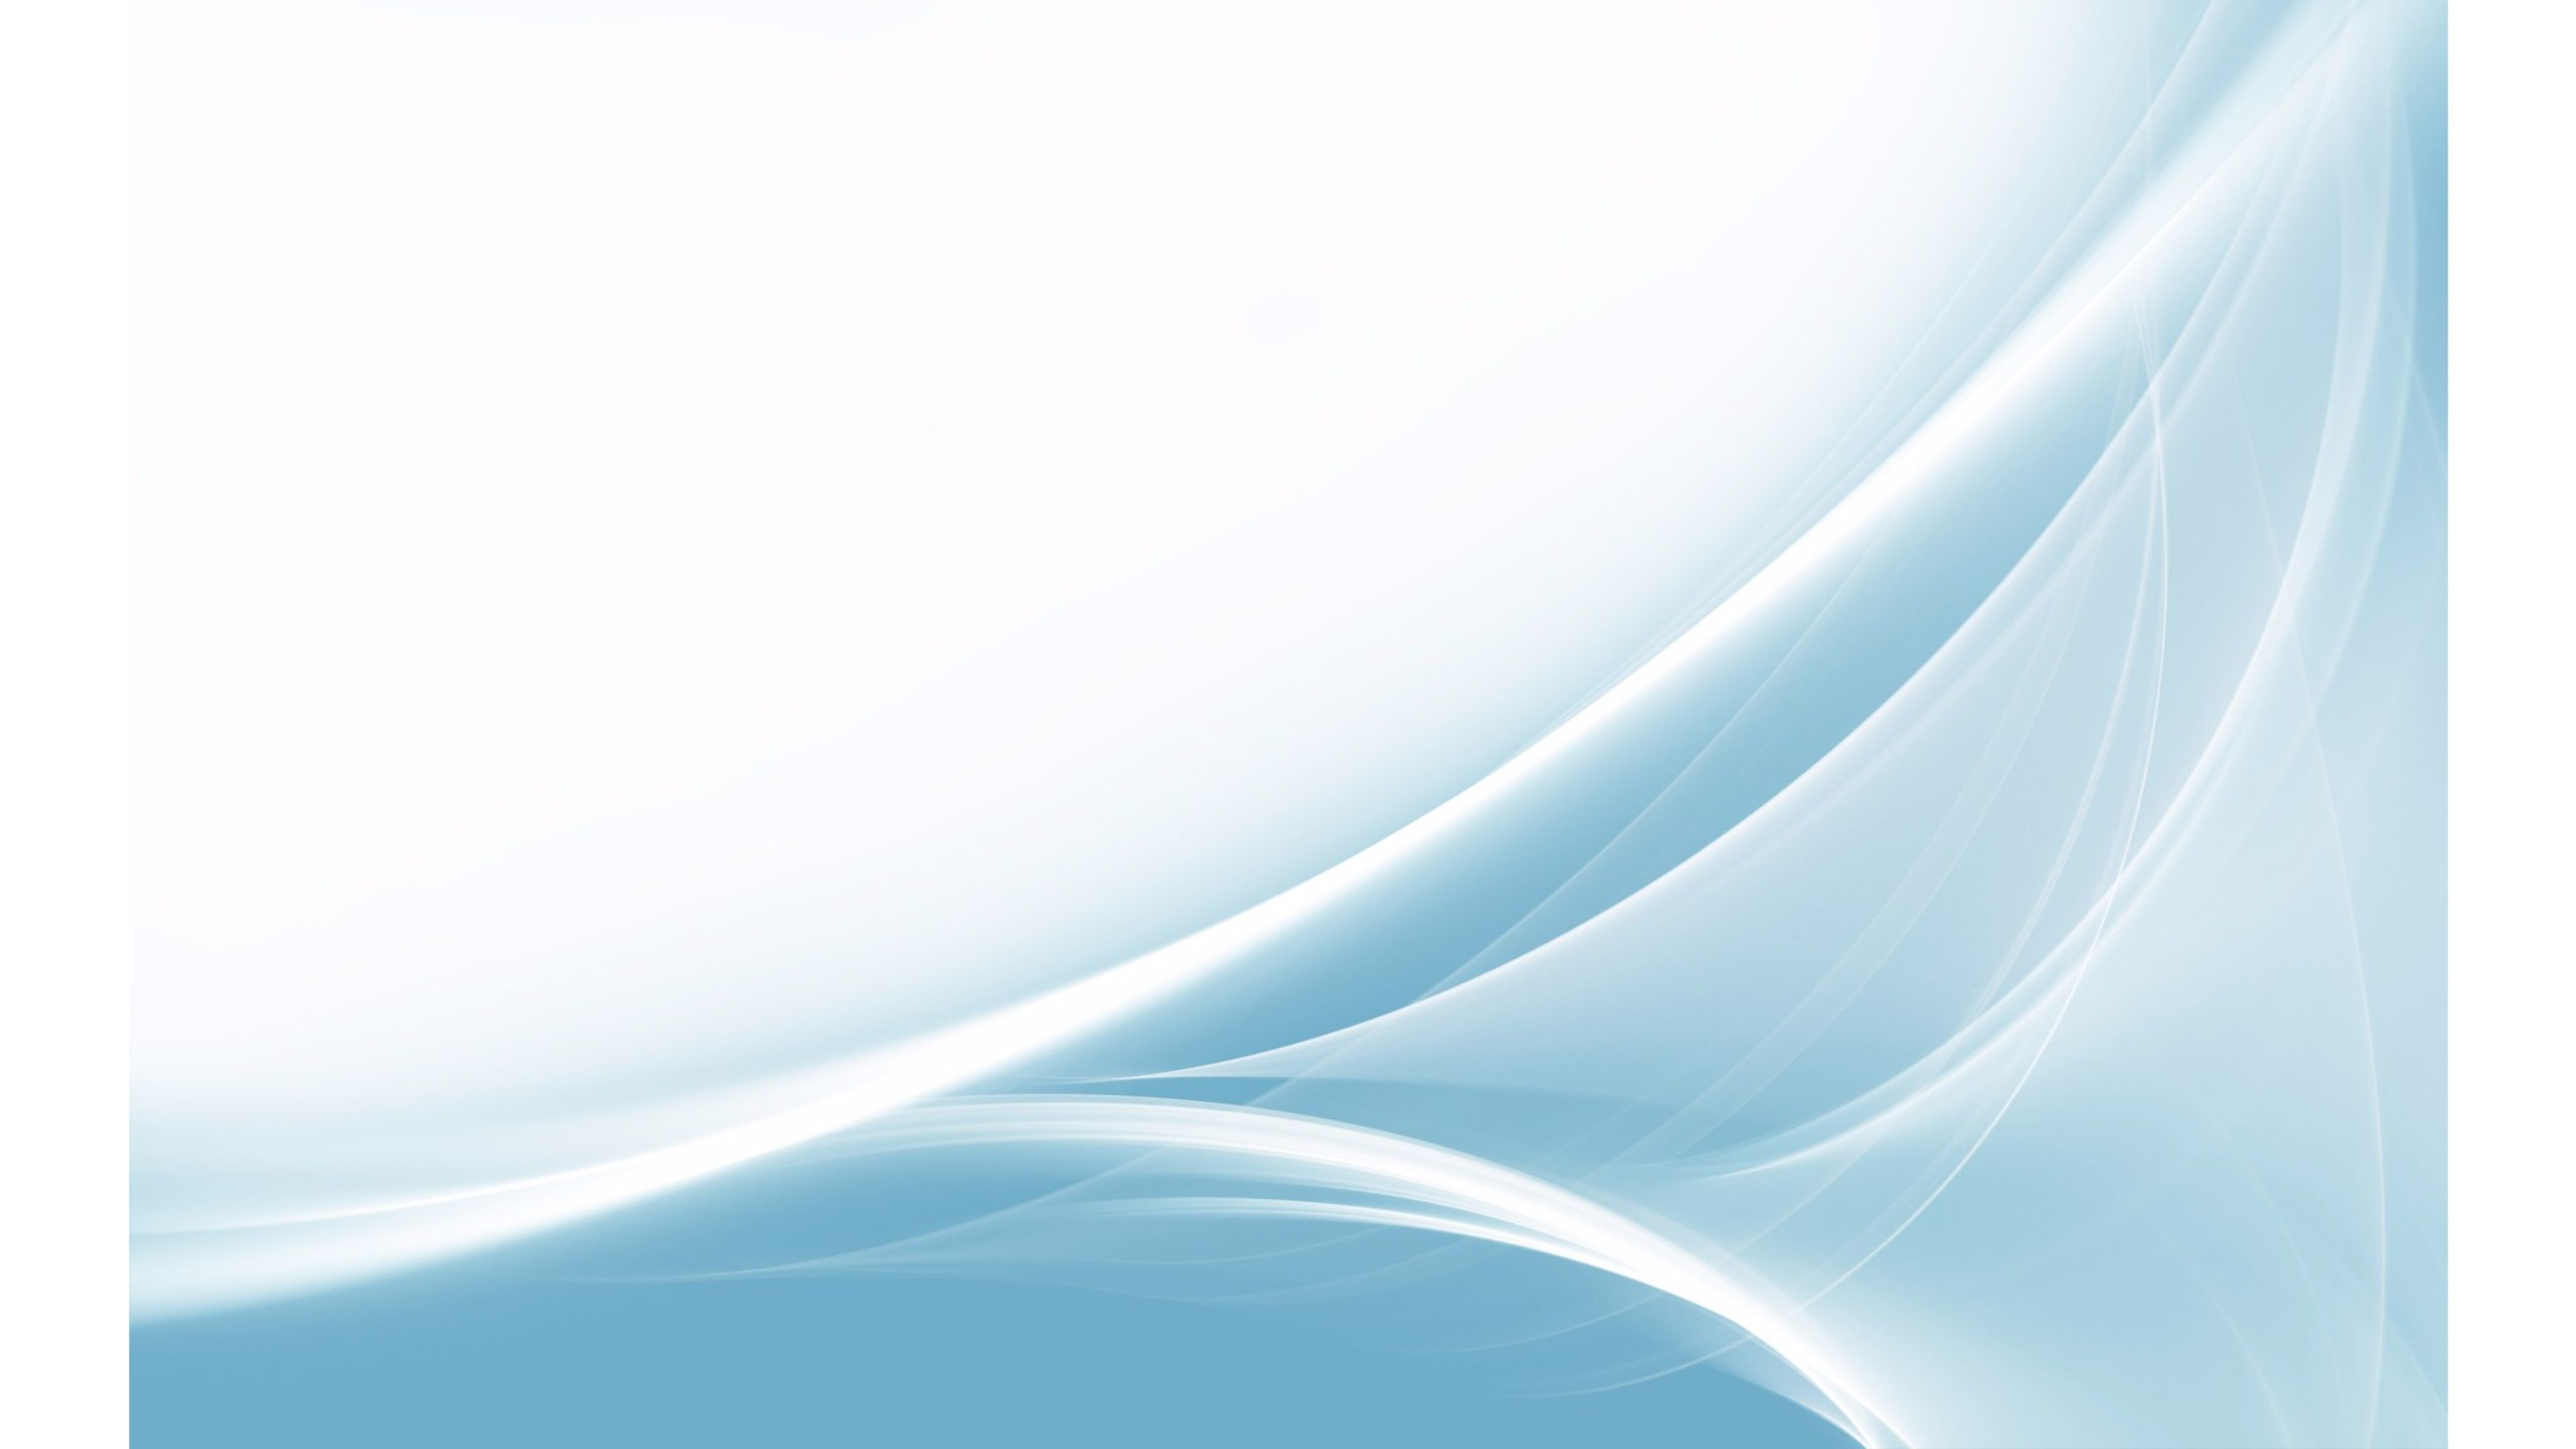 Res: 3840x2160, Blue and White Abstract 4K Wallpaper